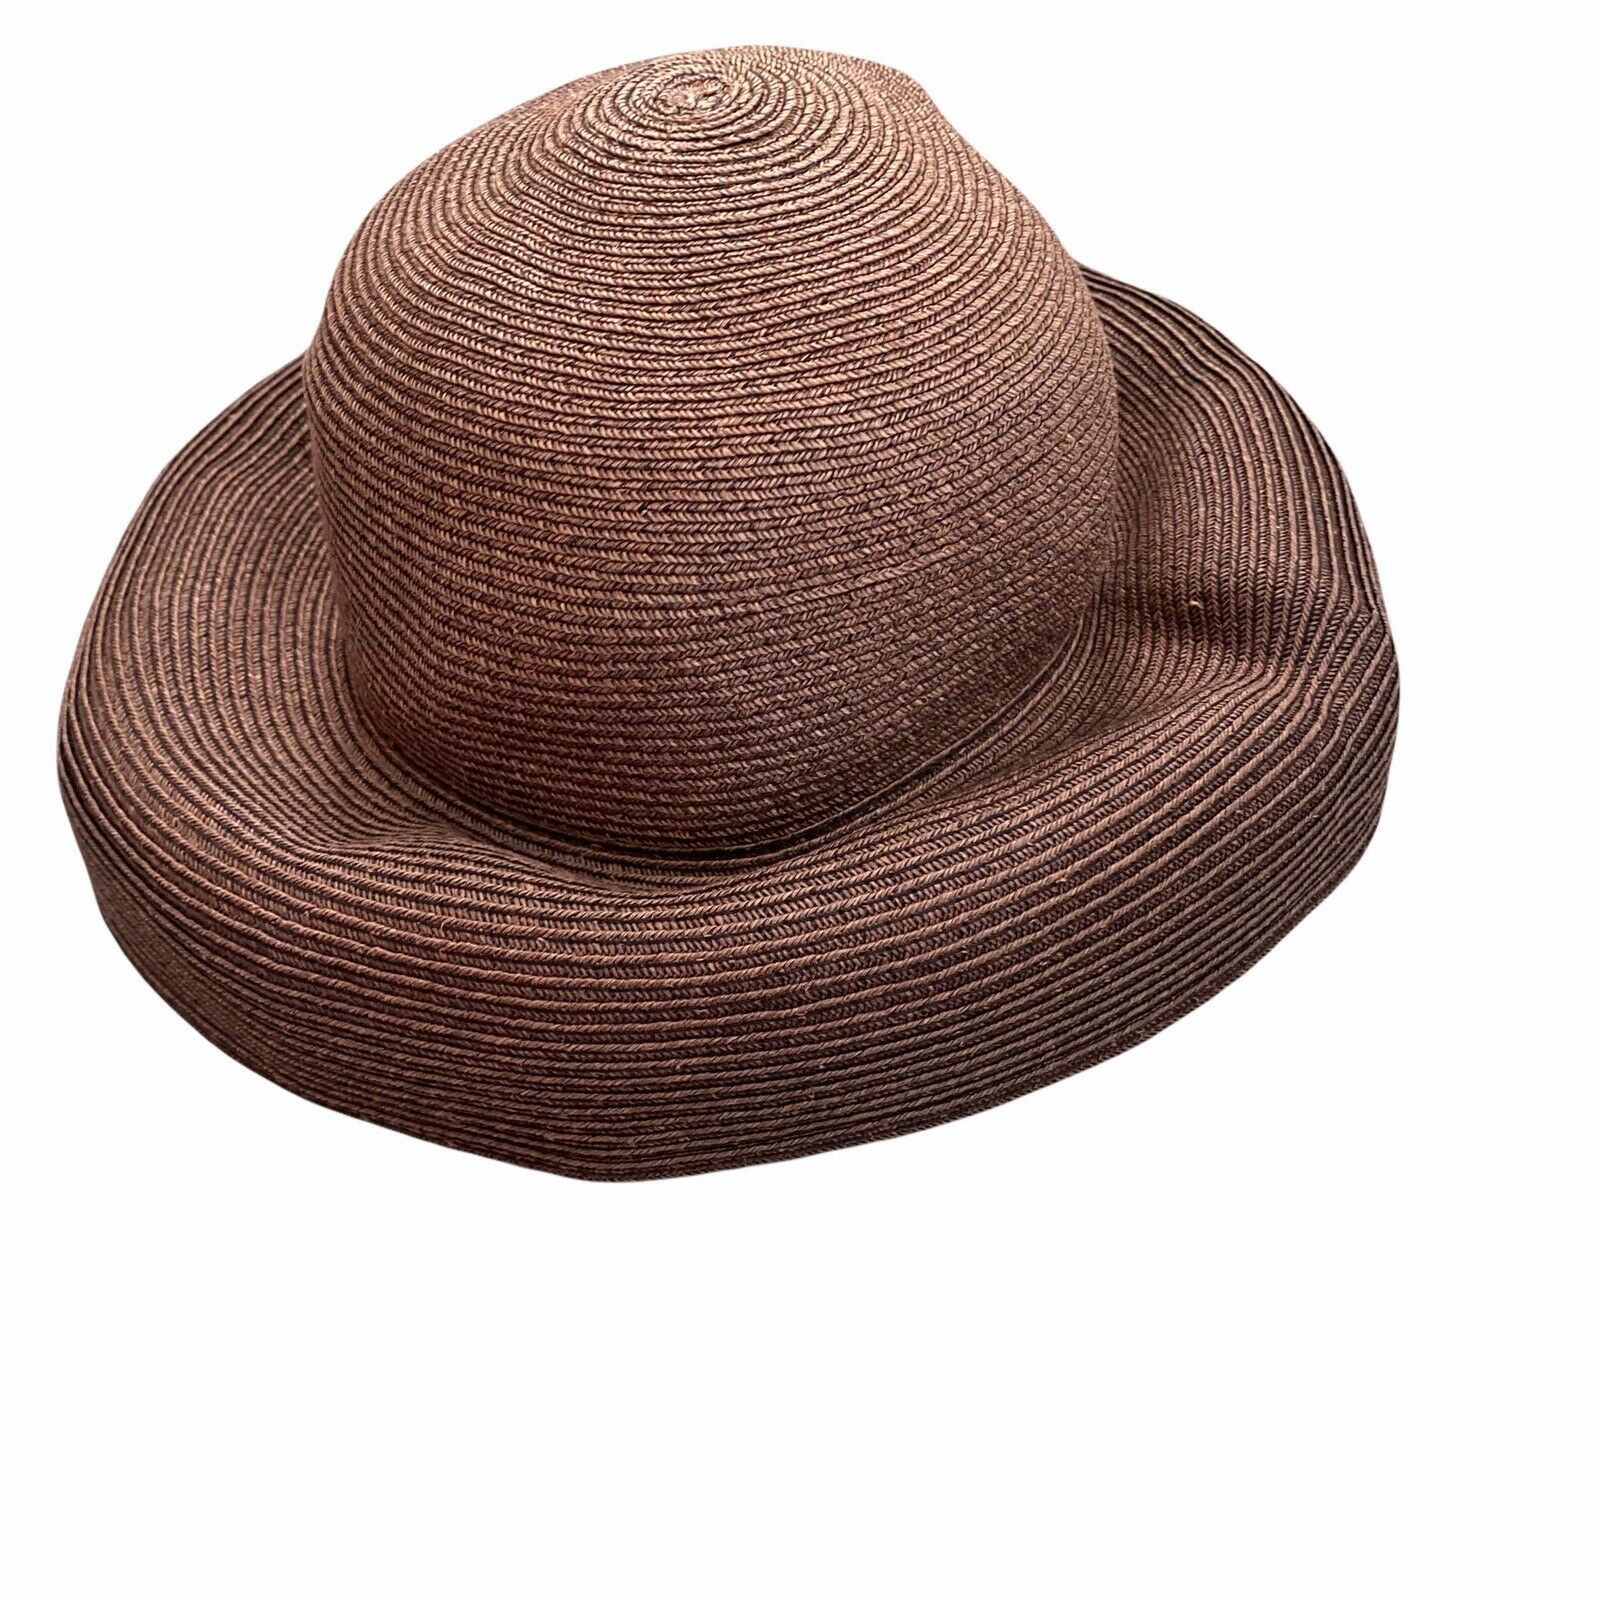 Eric Javits Squishee Packable Straw Hat Wide Brim… - image 11